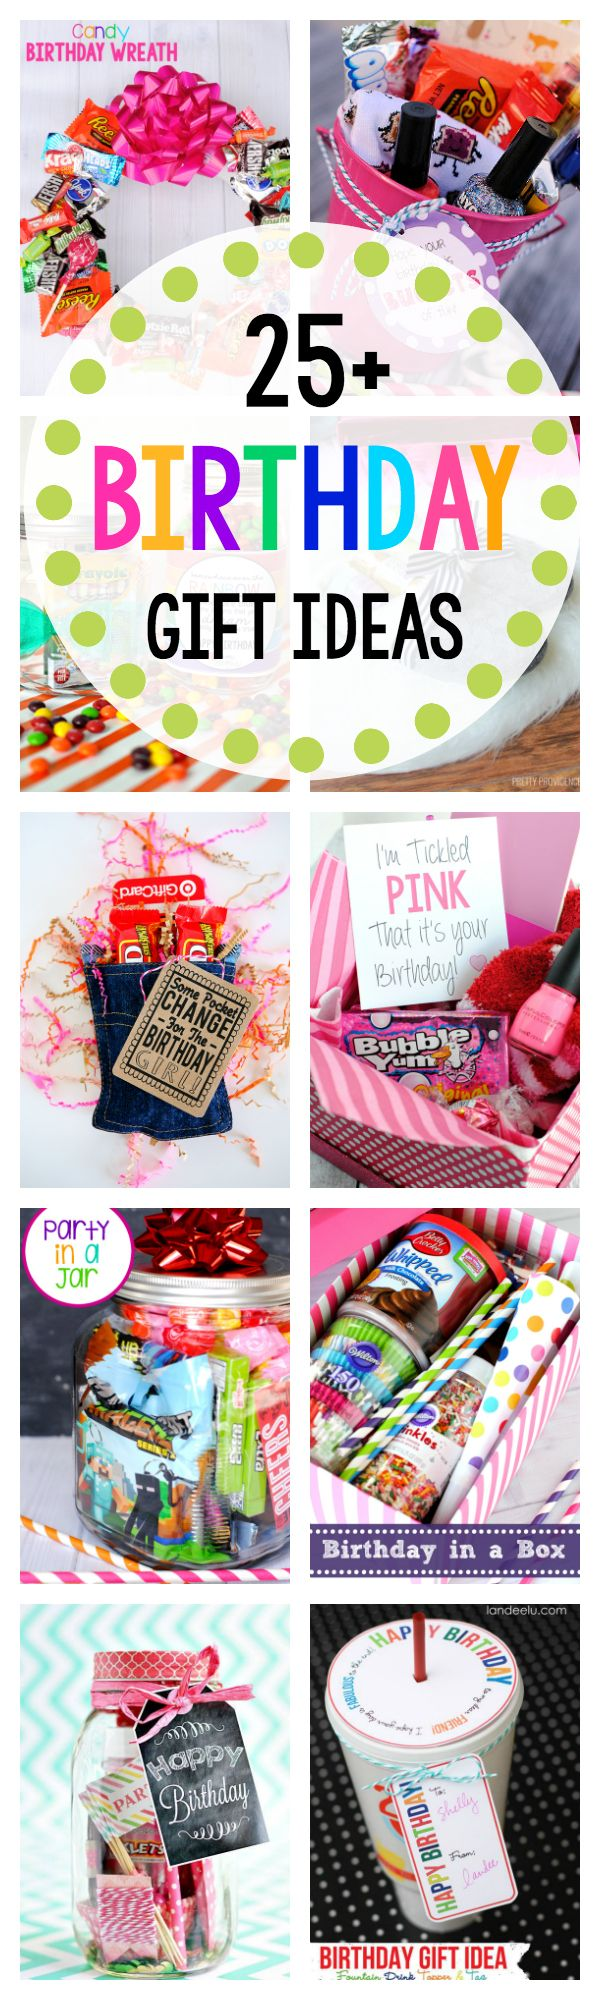 Birthday Gifts Inspiration 25 Amazing Fun Gift Ideas For